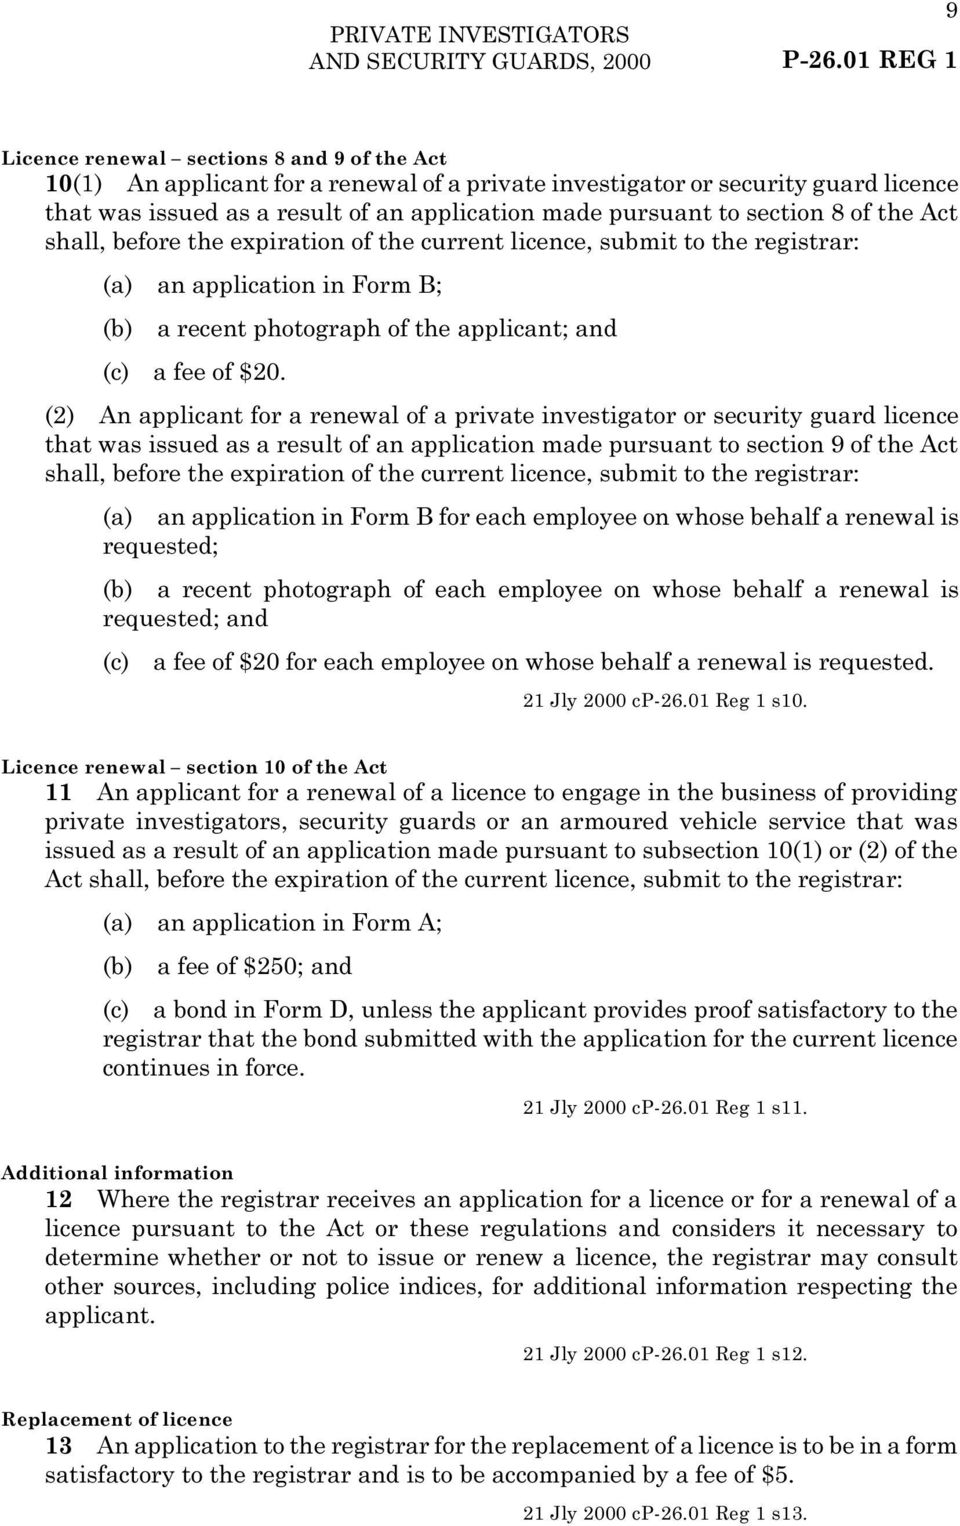 to section 8 of the Act shall, before the expiration of the current licence, submit to the registrar: (a) an application in Form B; (b) a recent photograph of the applicant; and (c) a fee of $20.